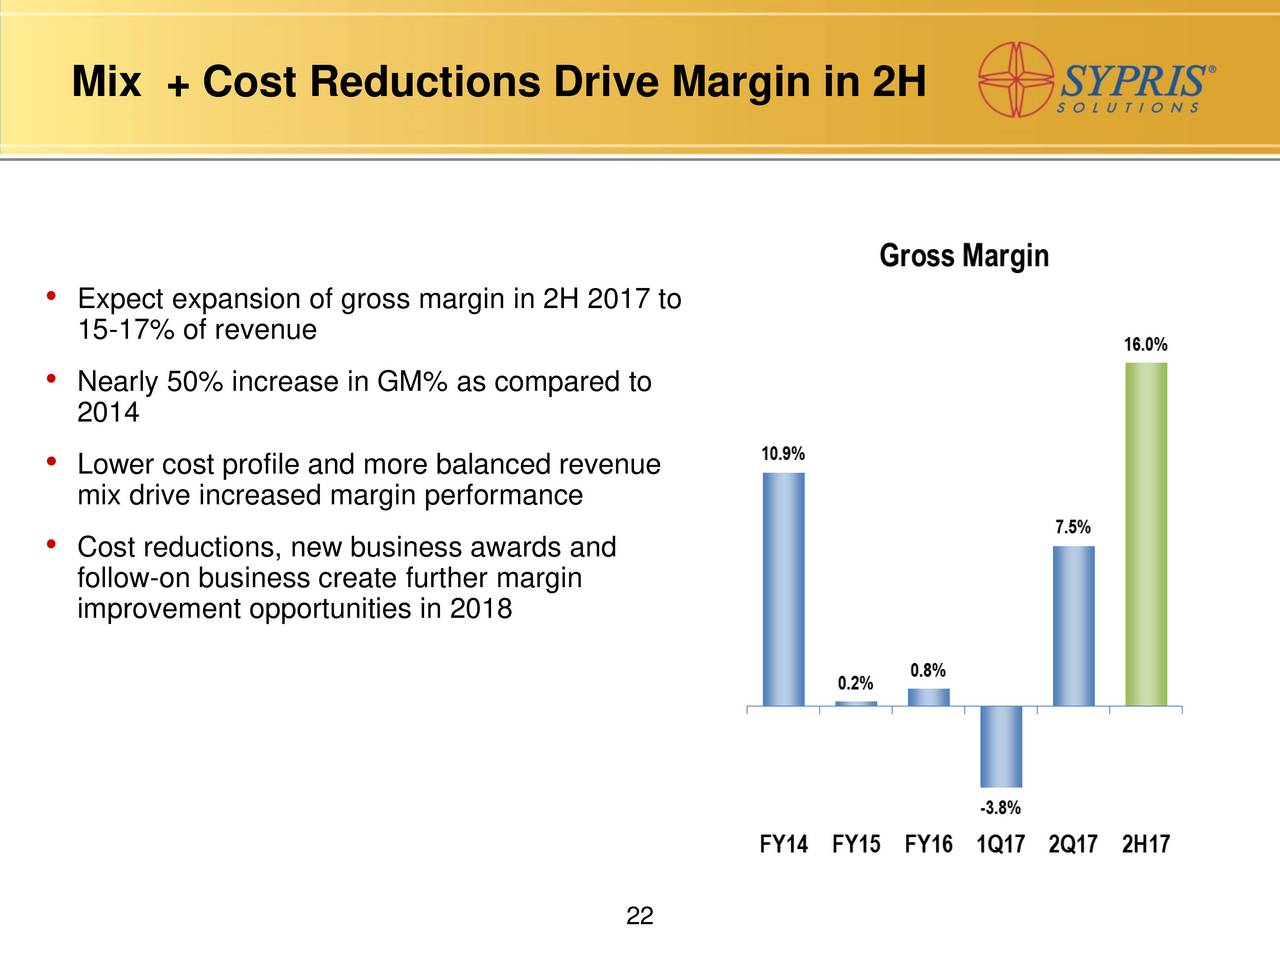 business revenue and target gross margin Markup vs gross margin: which is preferable though markup is often used by operations or sales departments to set prices it often overstates the profitability of the transaction mathematically, markup is always a larger number when compared to the gross margin consequently, non-financial individuals think they are obtaining a larger profit than is often the case.